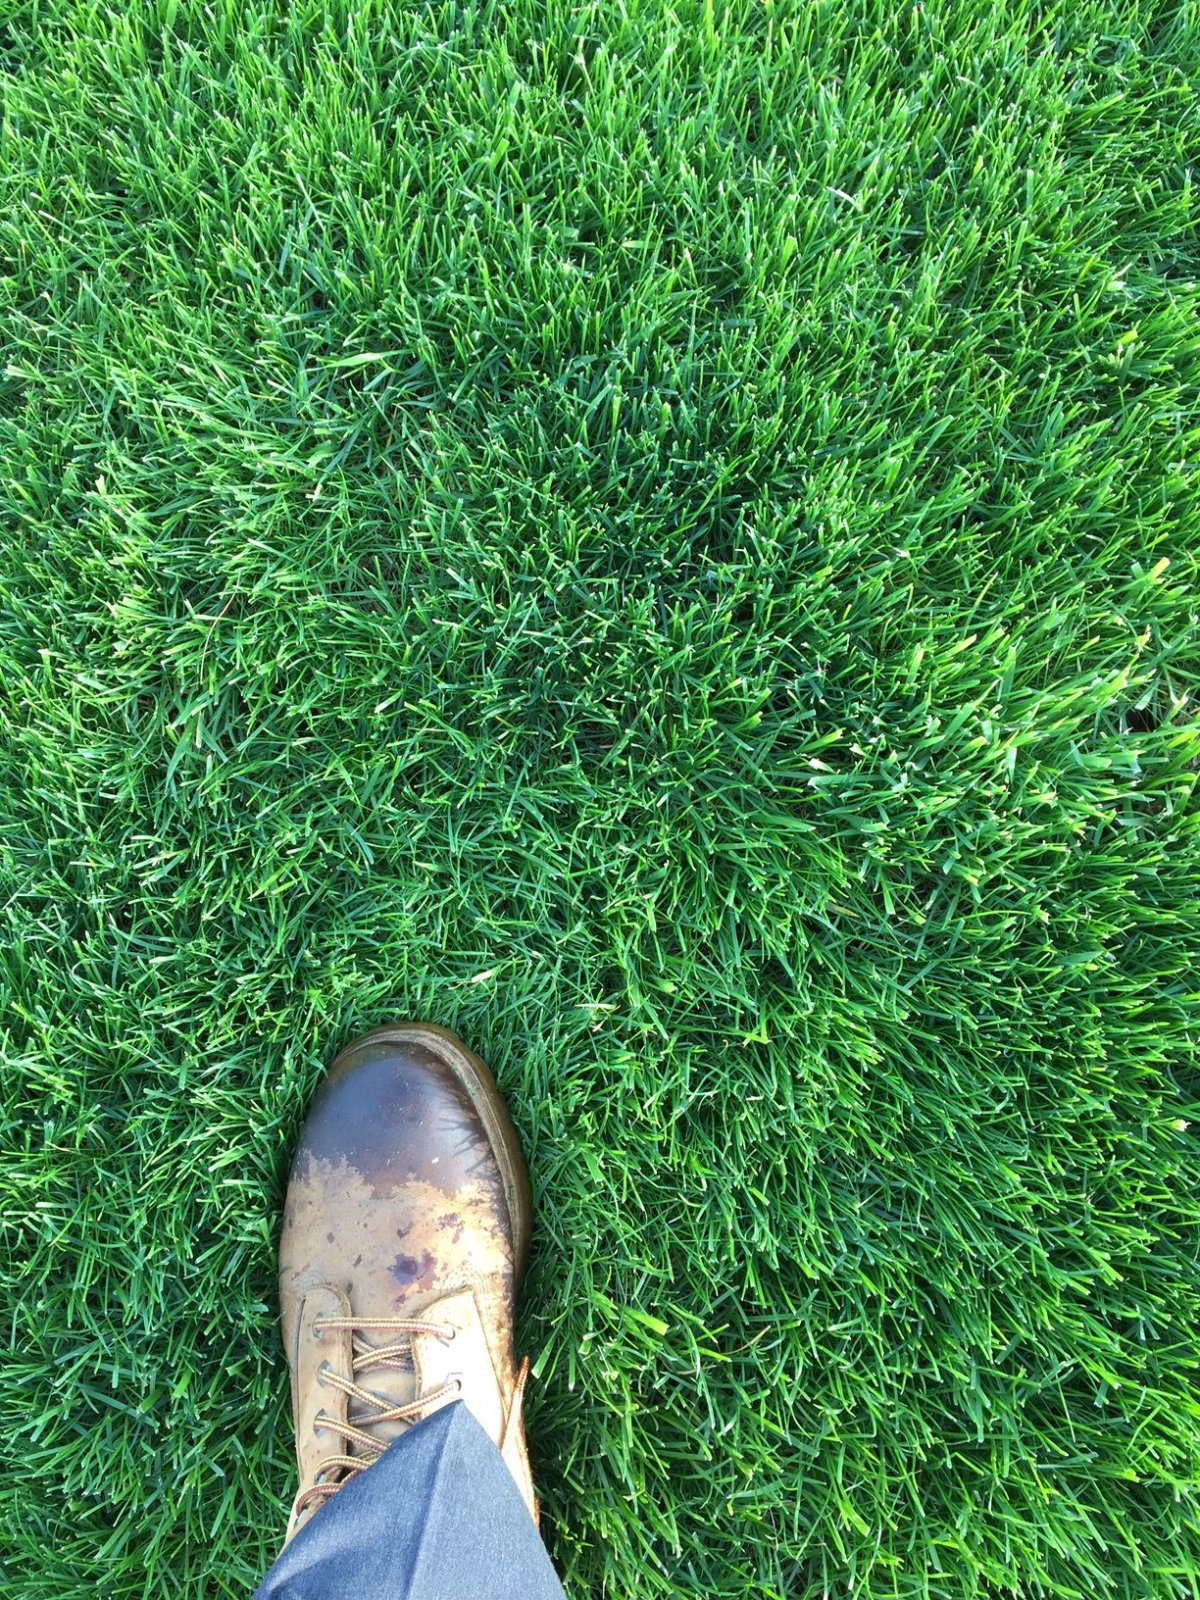 Crazy thick lawn May 2018.jpg